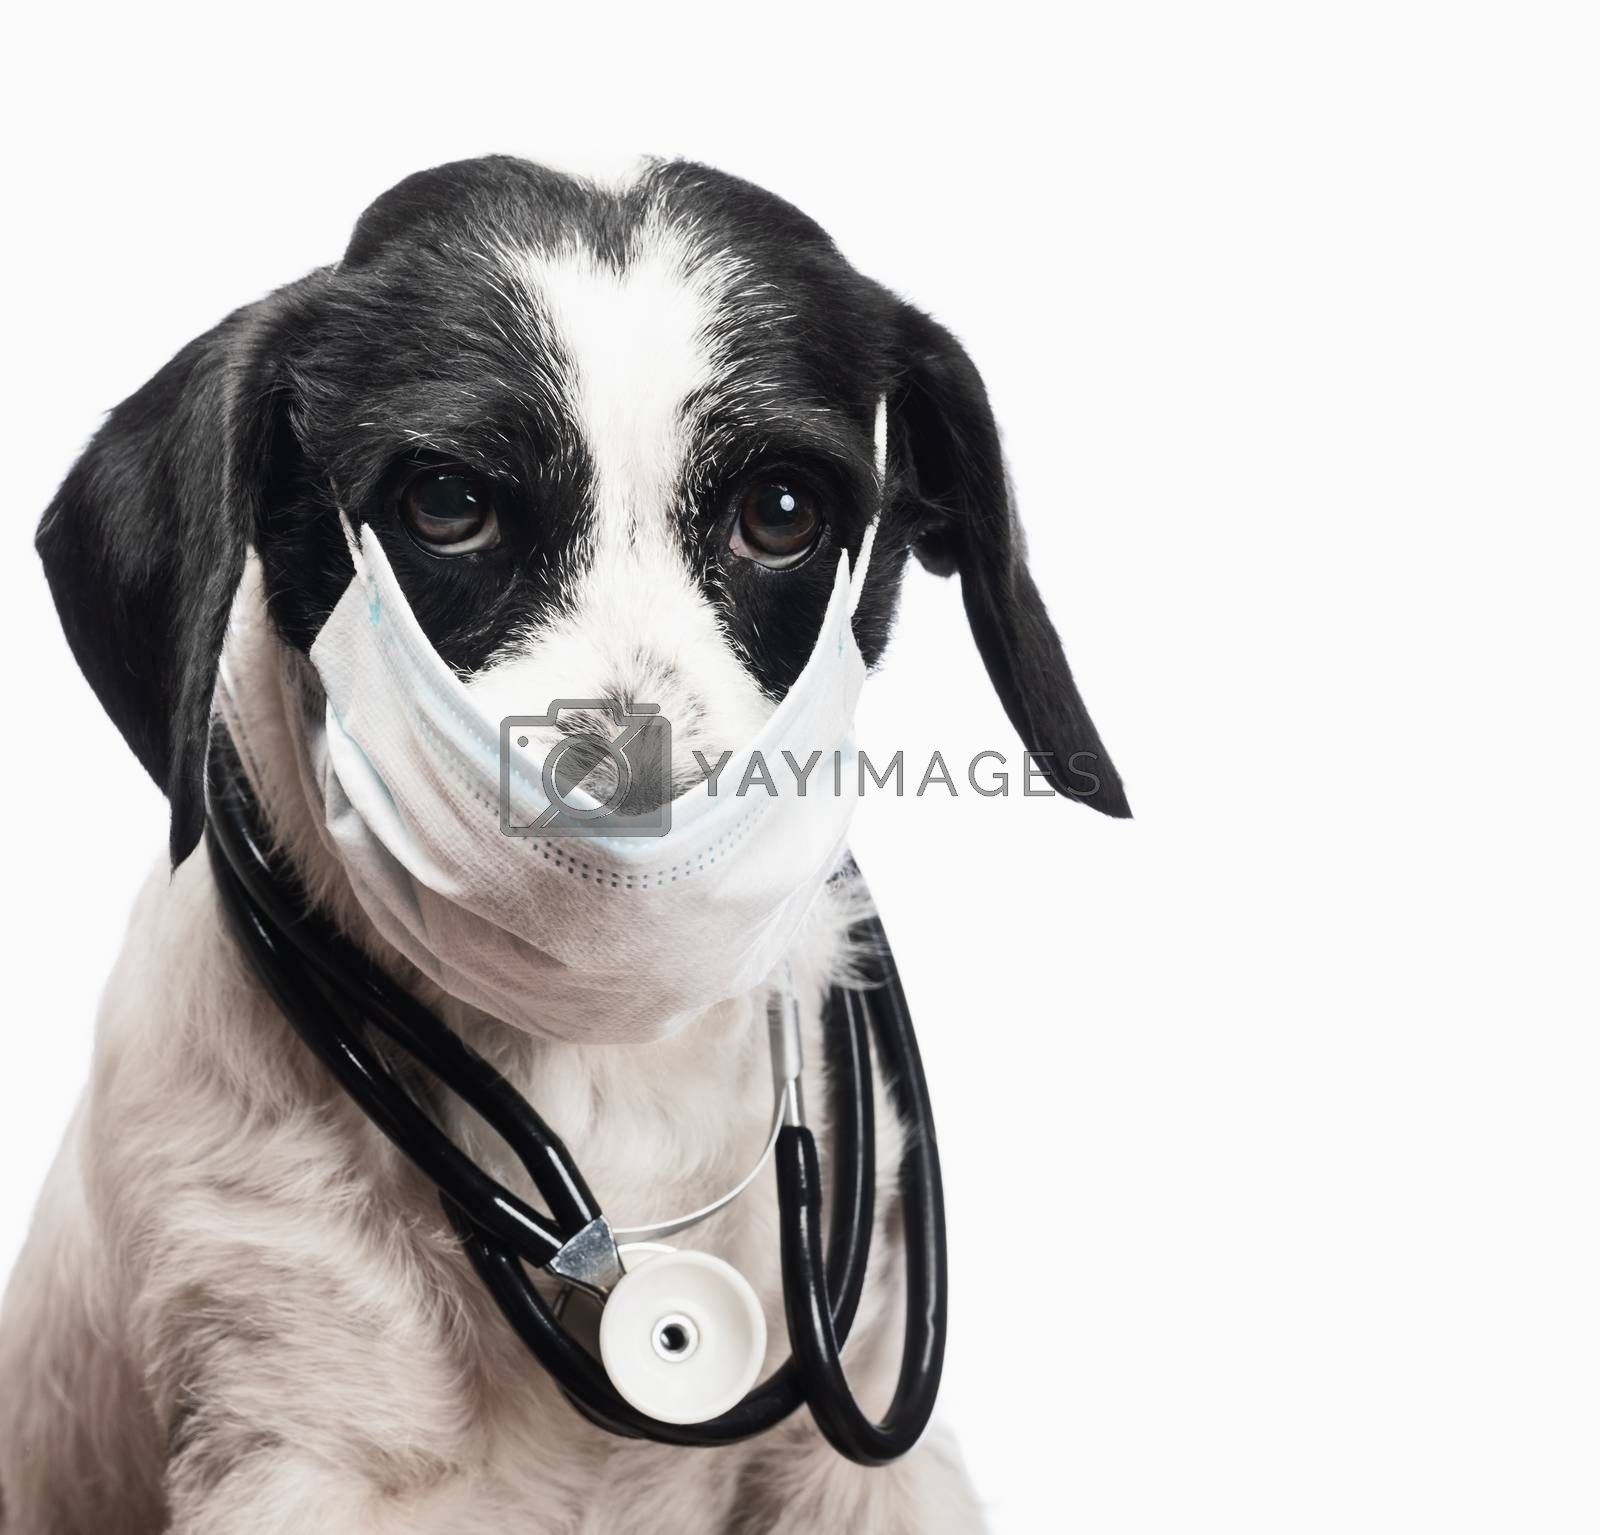 Portrait of Vet dog wearing protective surgical mask and stethoscope on his neck